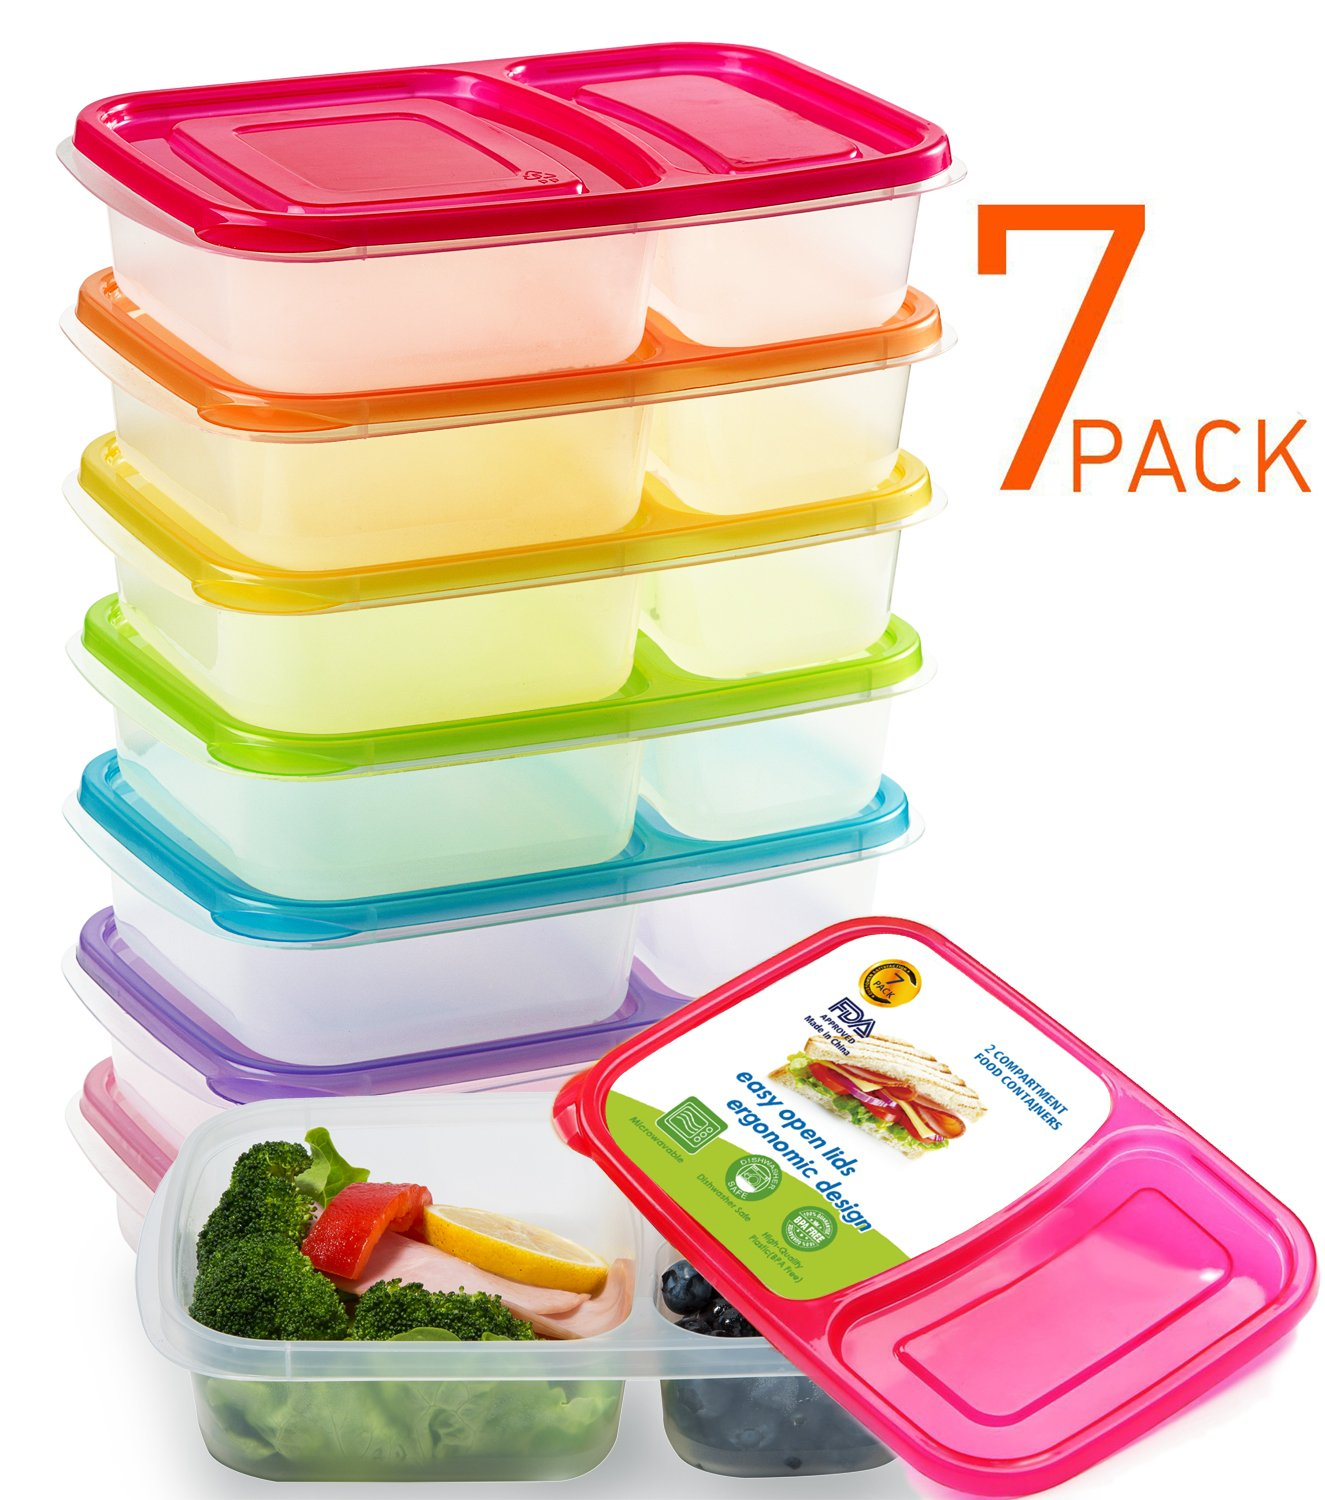 Meal Prep Containers 2 Compartment Bento Lunch Box Containers with Lids Set of 7,Plastic Food Storage Containers with Lids,BPA Free,Reusable,Microwave,Dishwasher Safe,&Portion Control by Mealcon